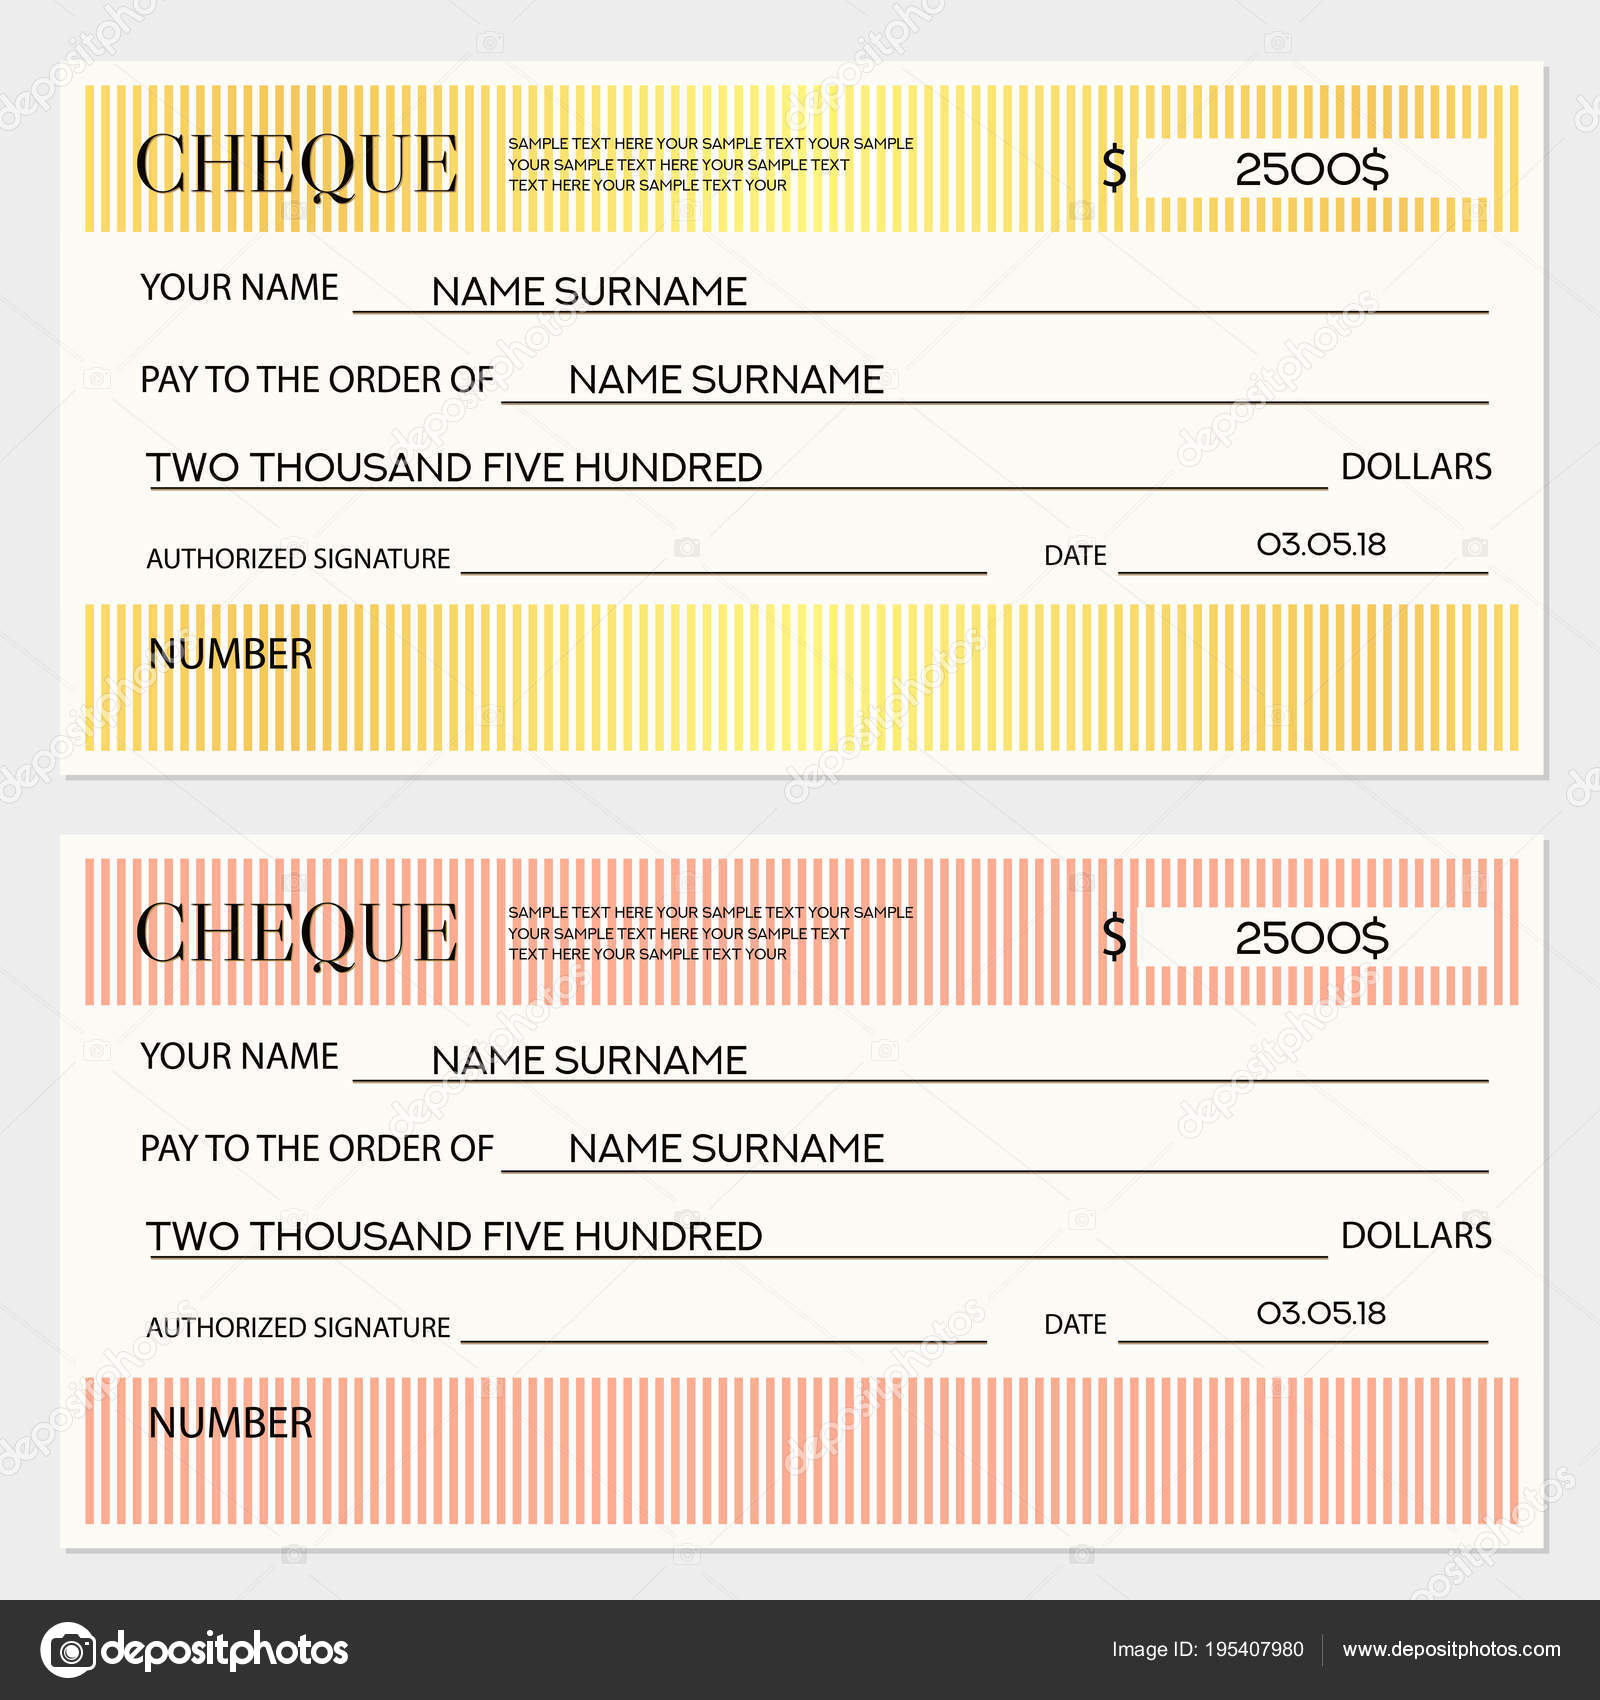 Check Cheque Chequebook Template Lines Pattern Lines Gold Background